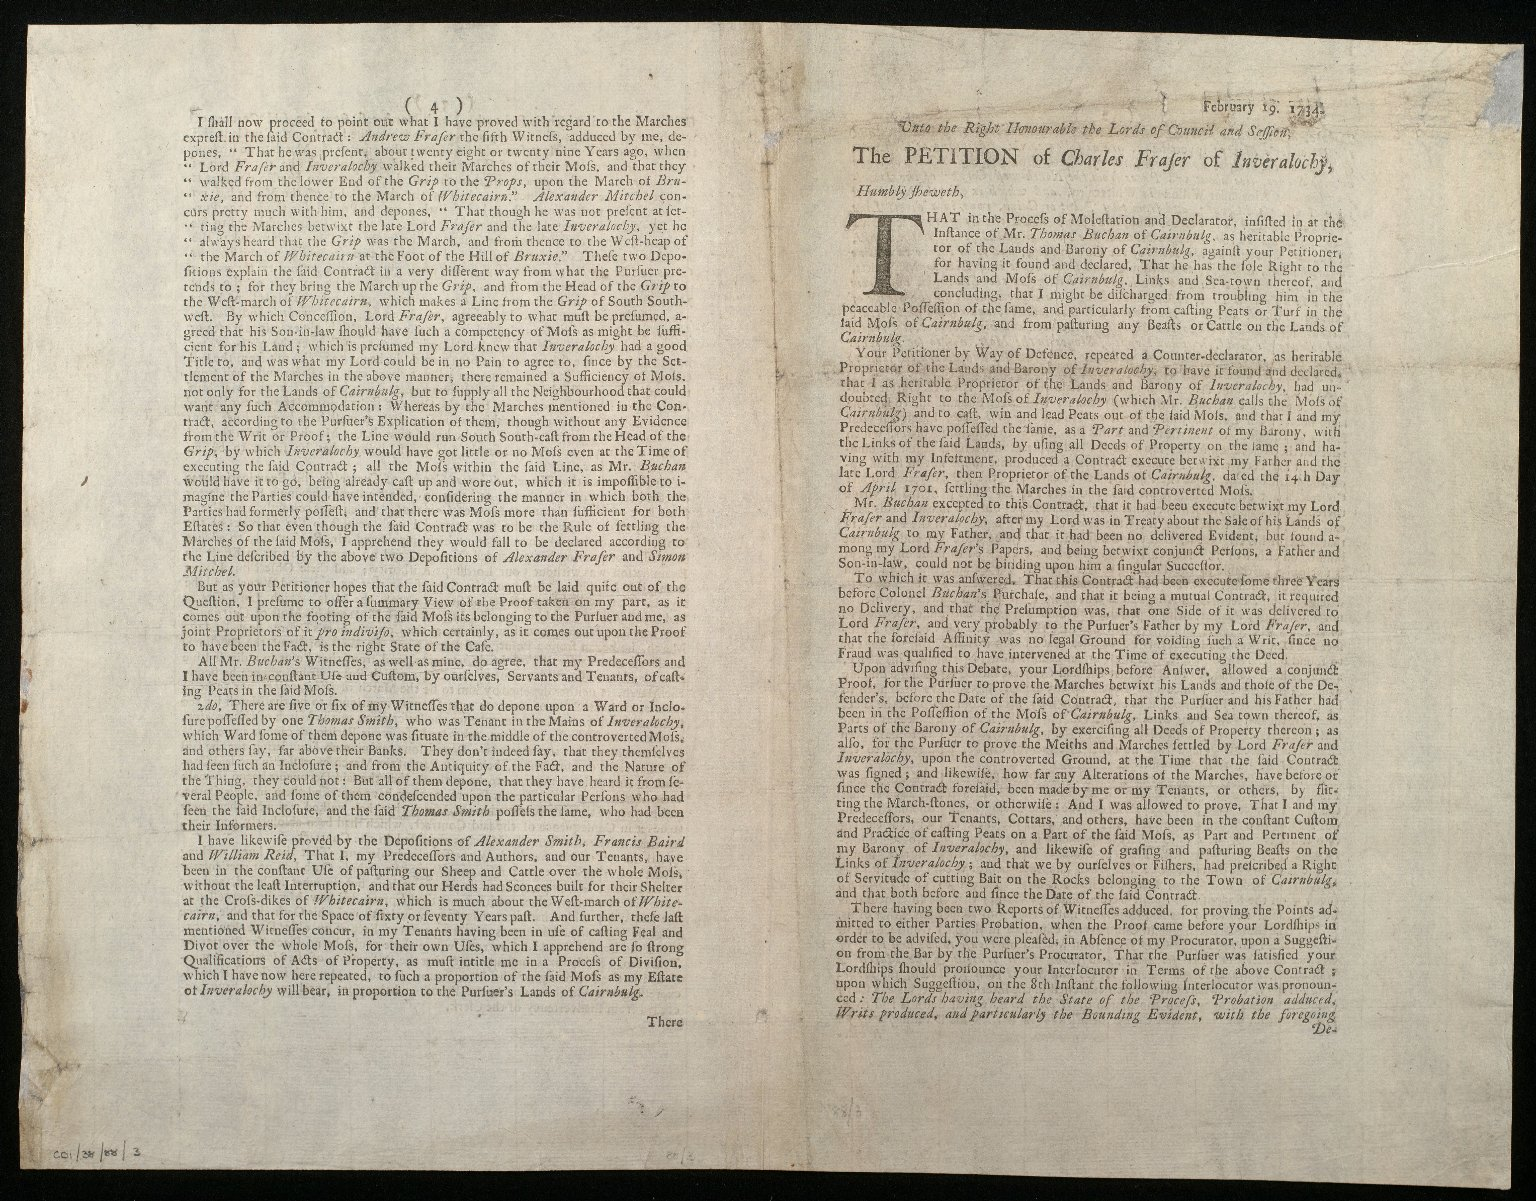 The Petition of Charles Fraser of Inveralochy [1 of 3]